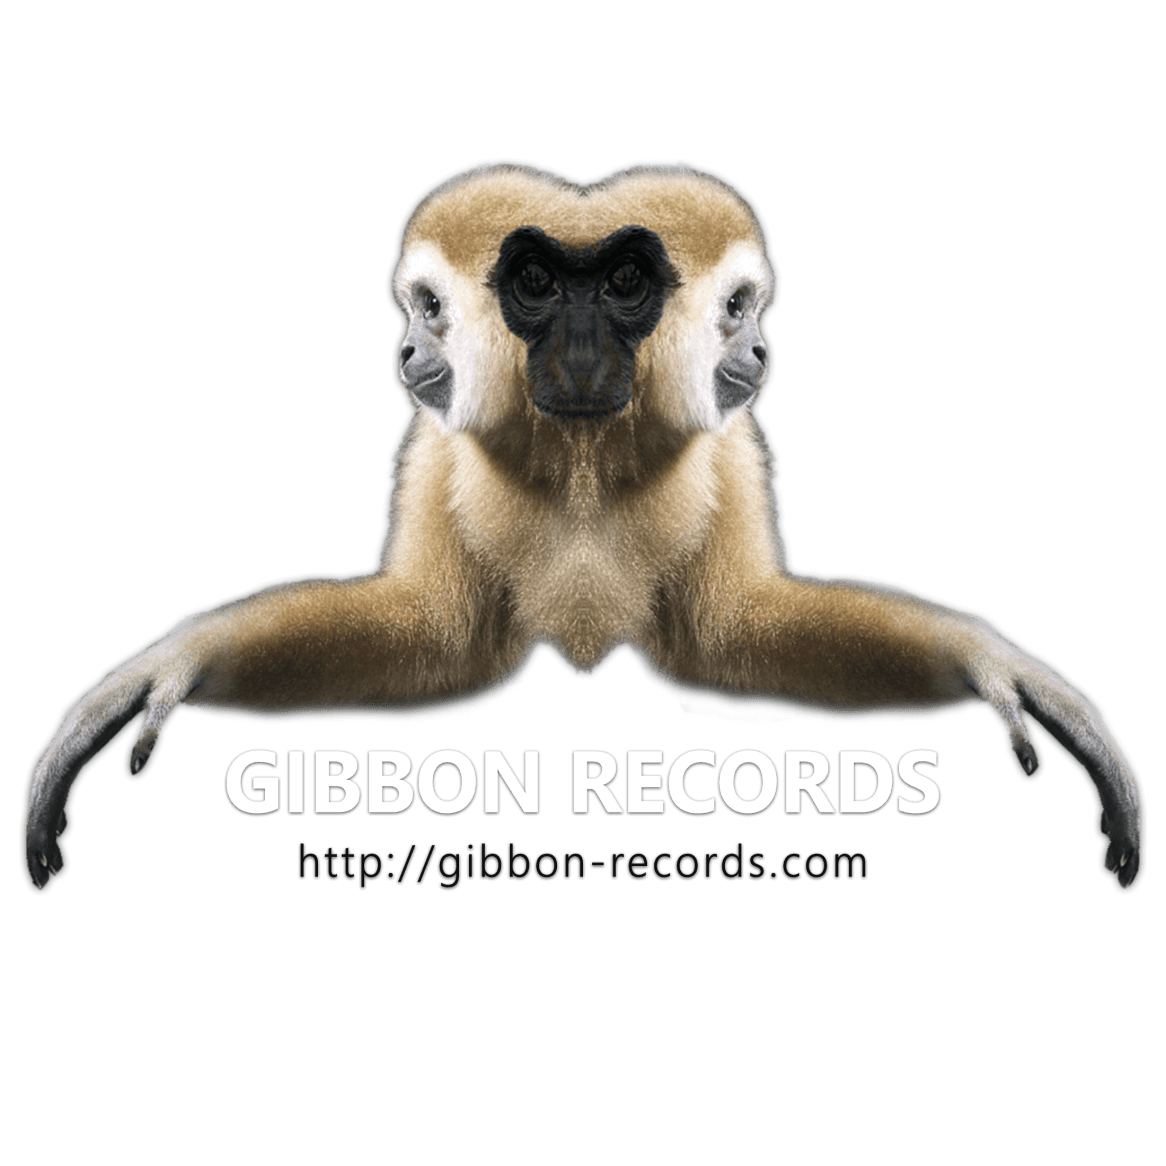 Gibbon_logo_Main_Dark_transBG